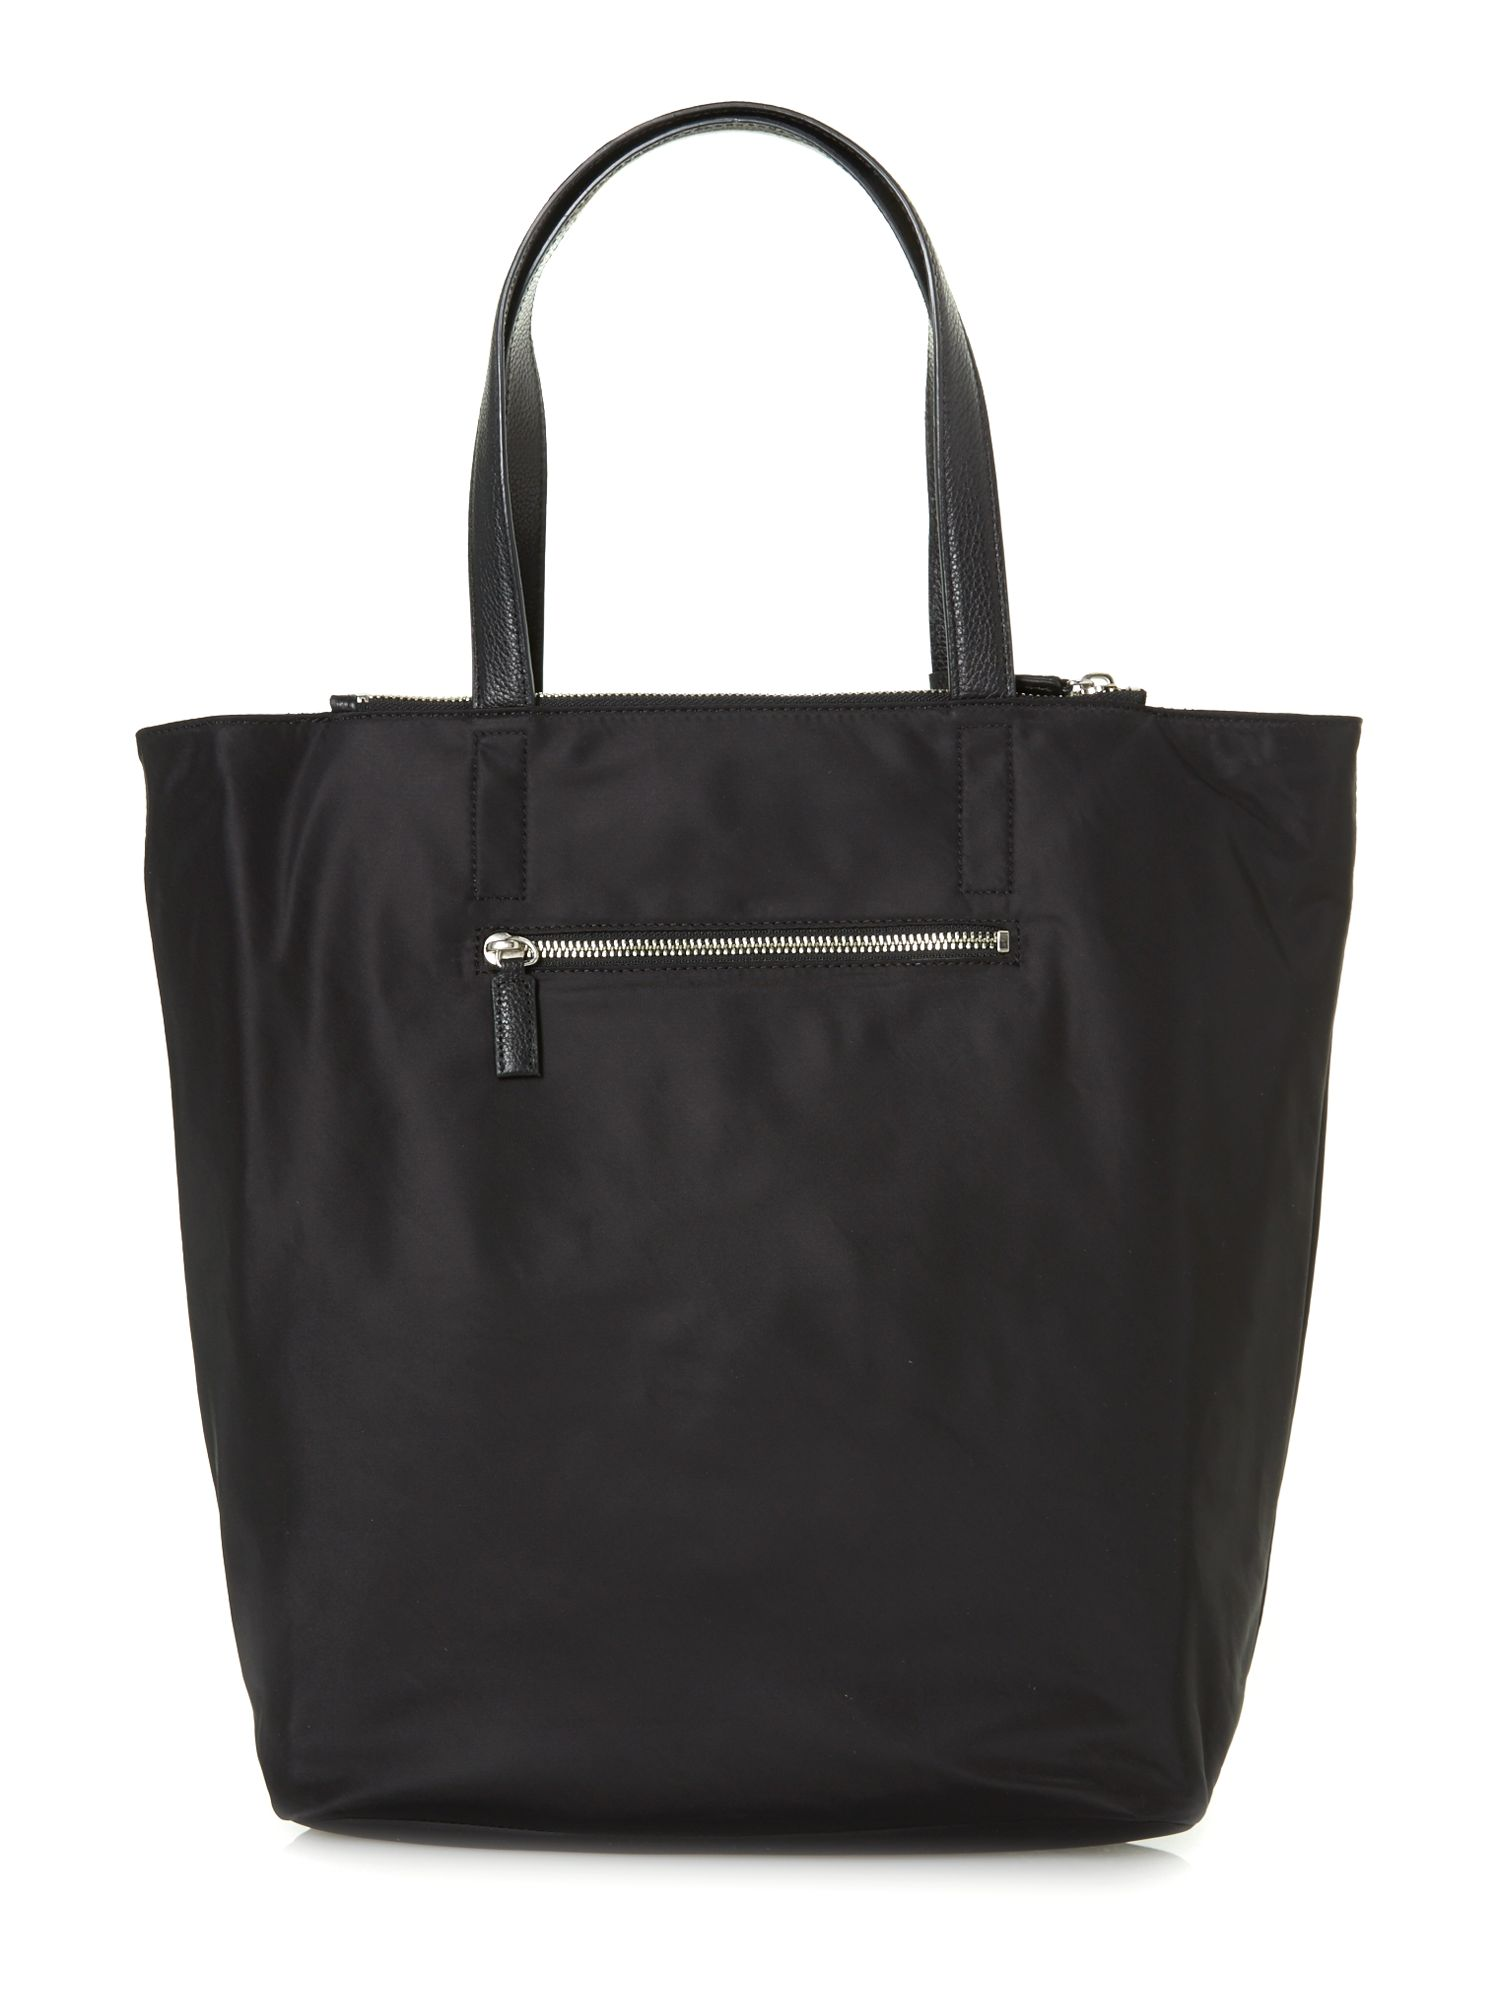 Nylon black large tassel tote bag